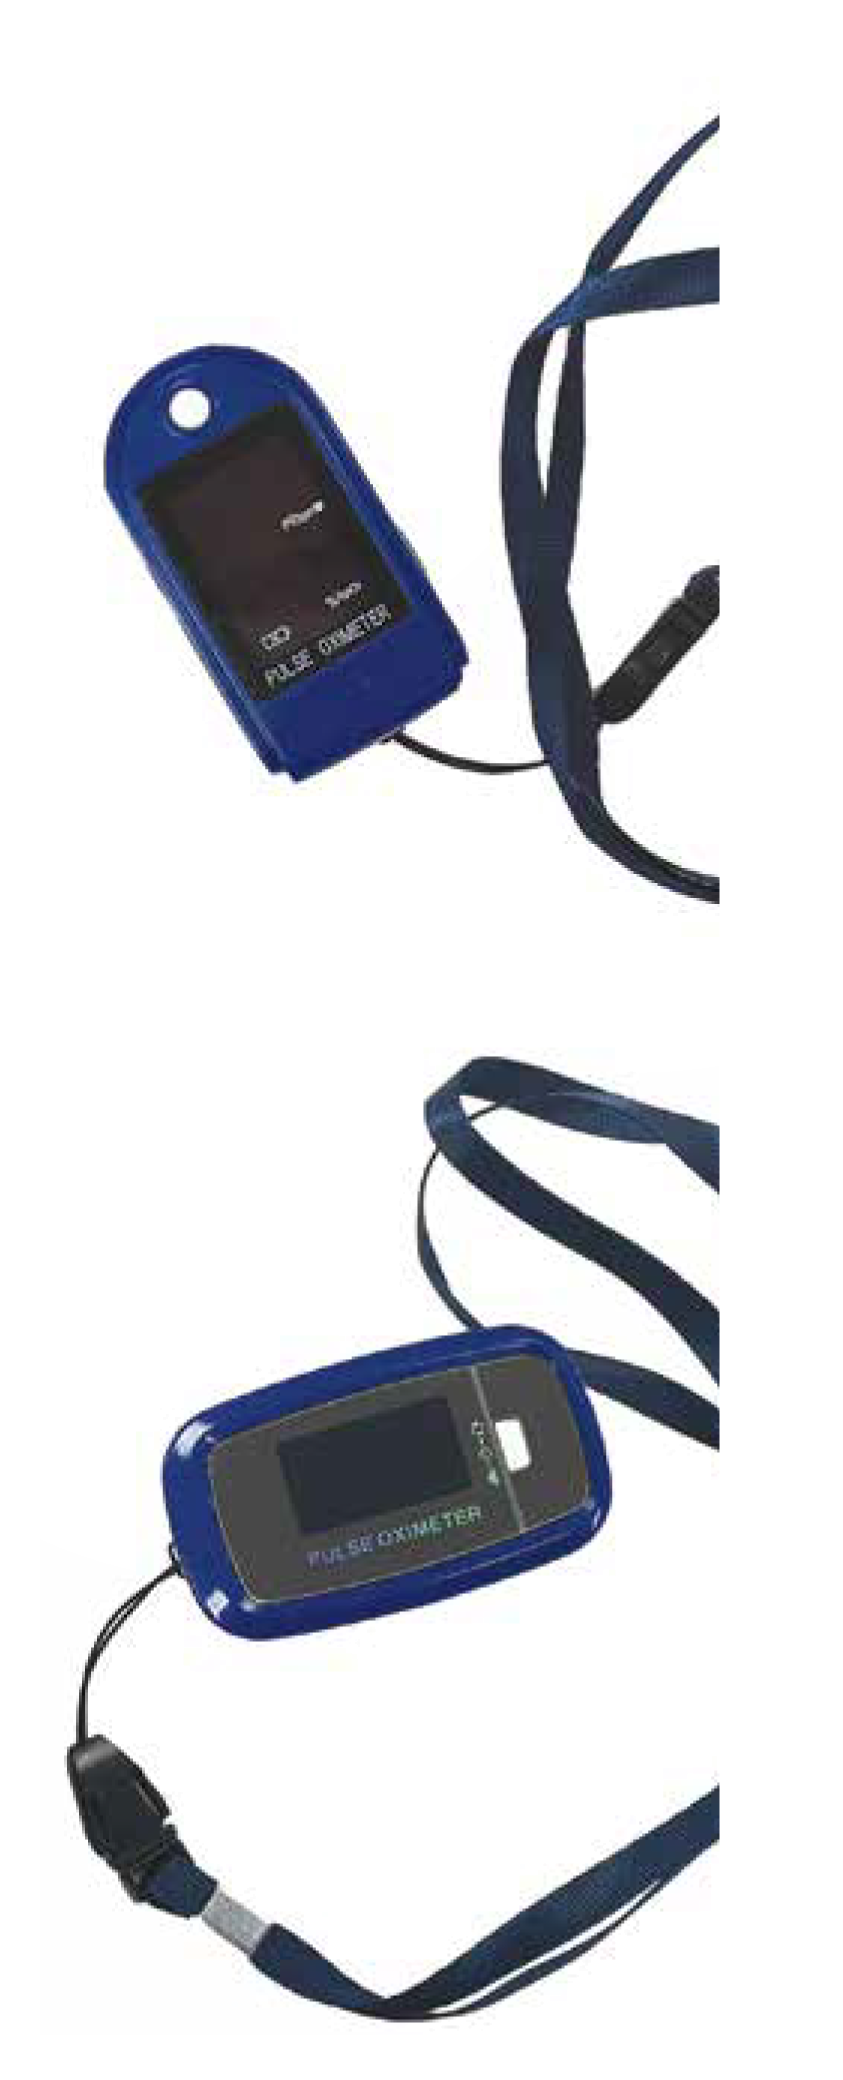 Just Released: NEW Oximeters!